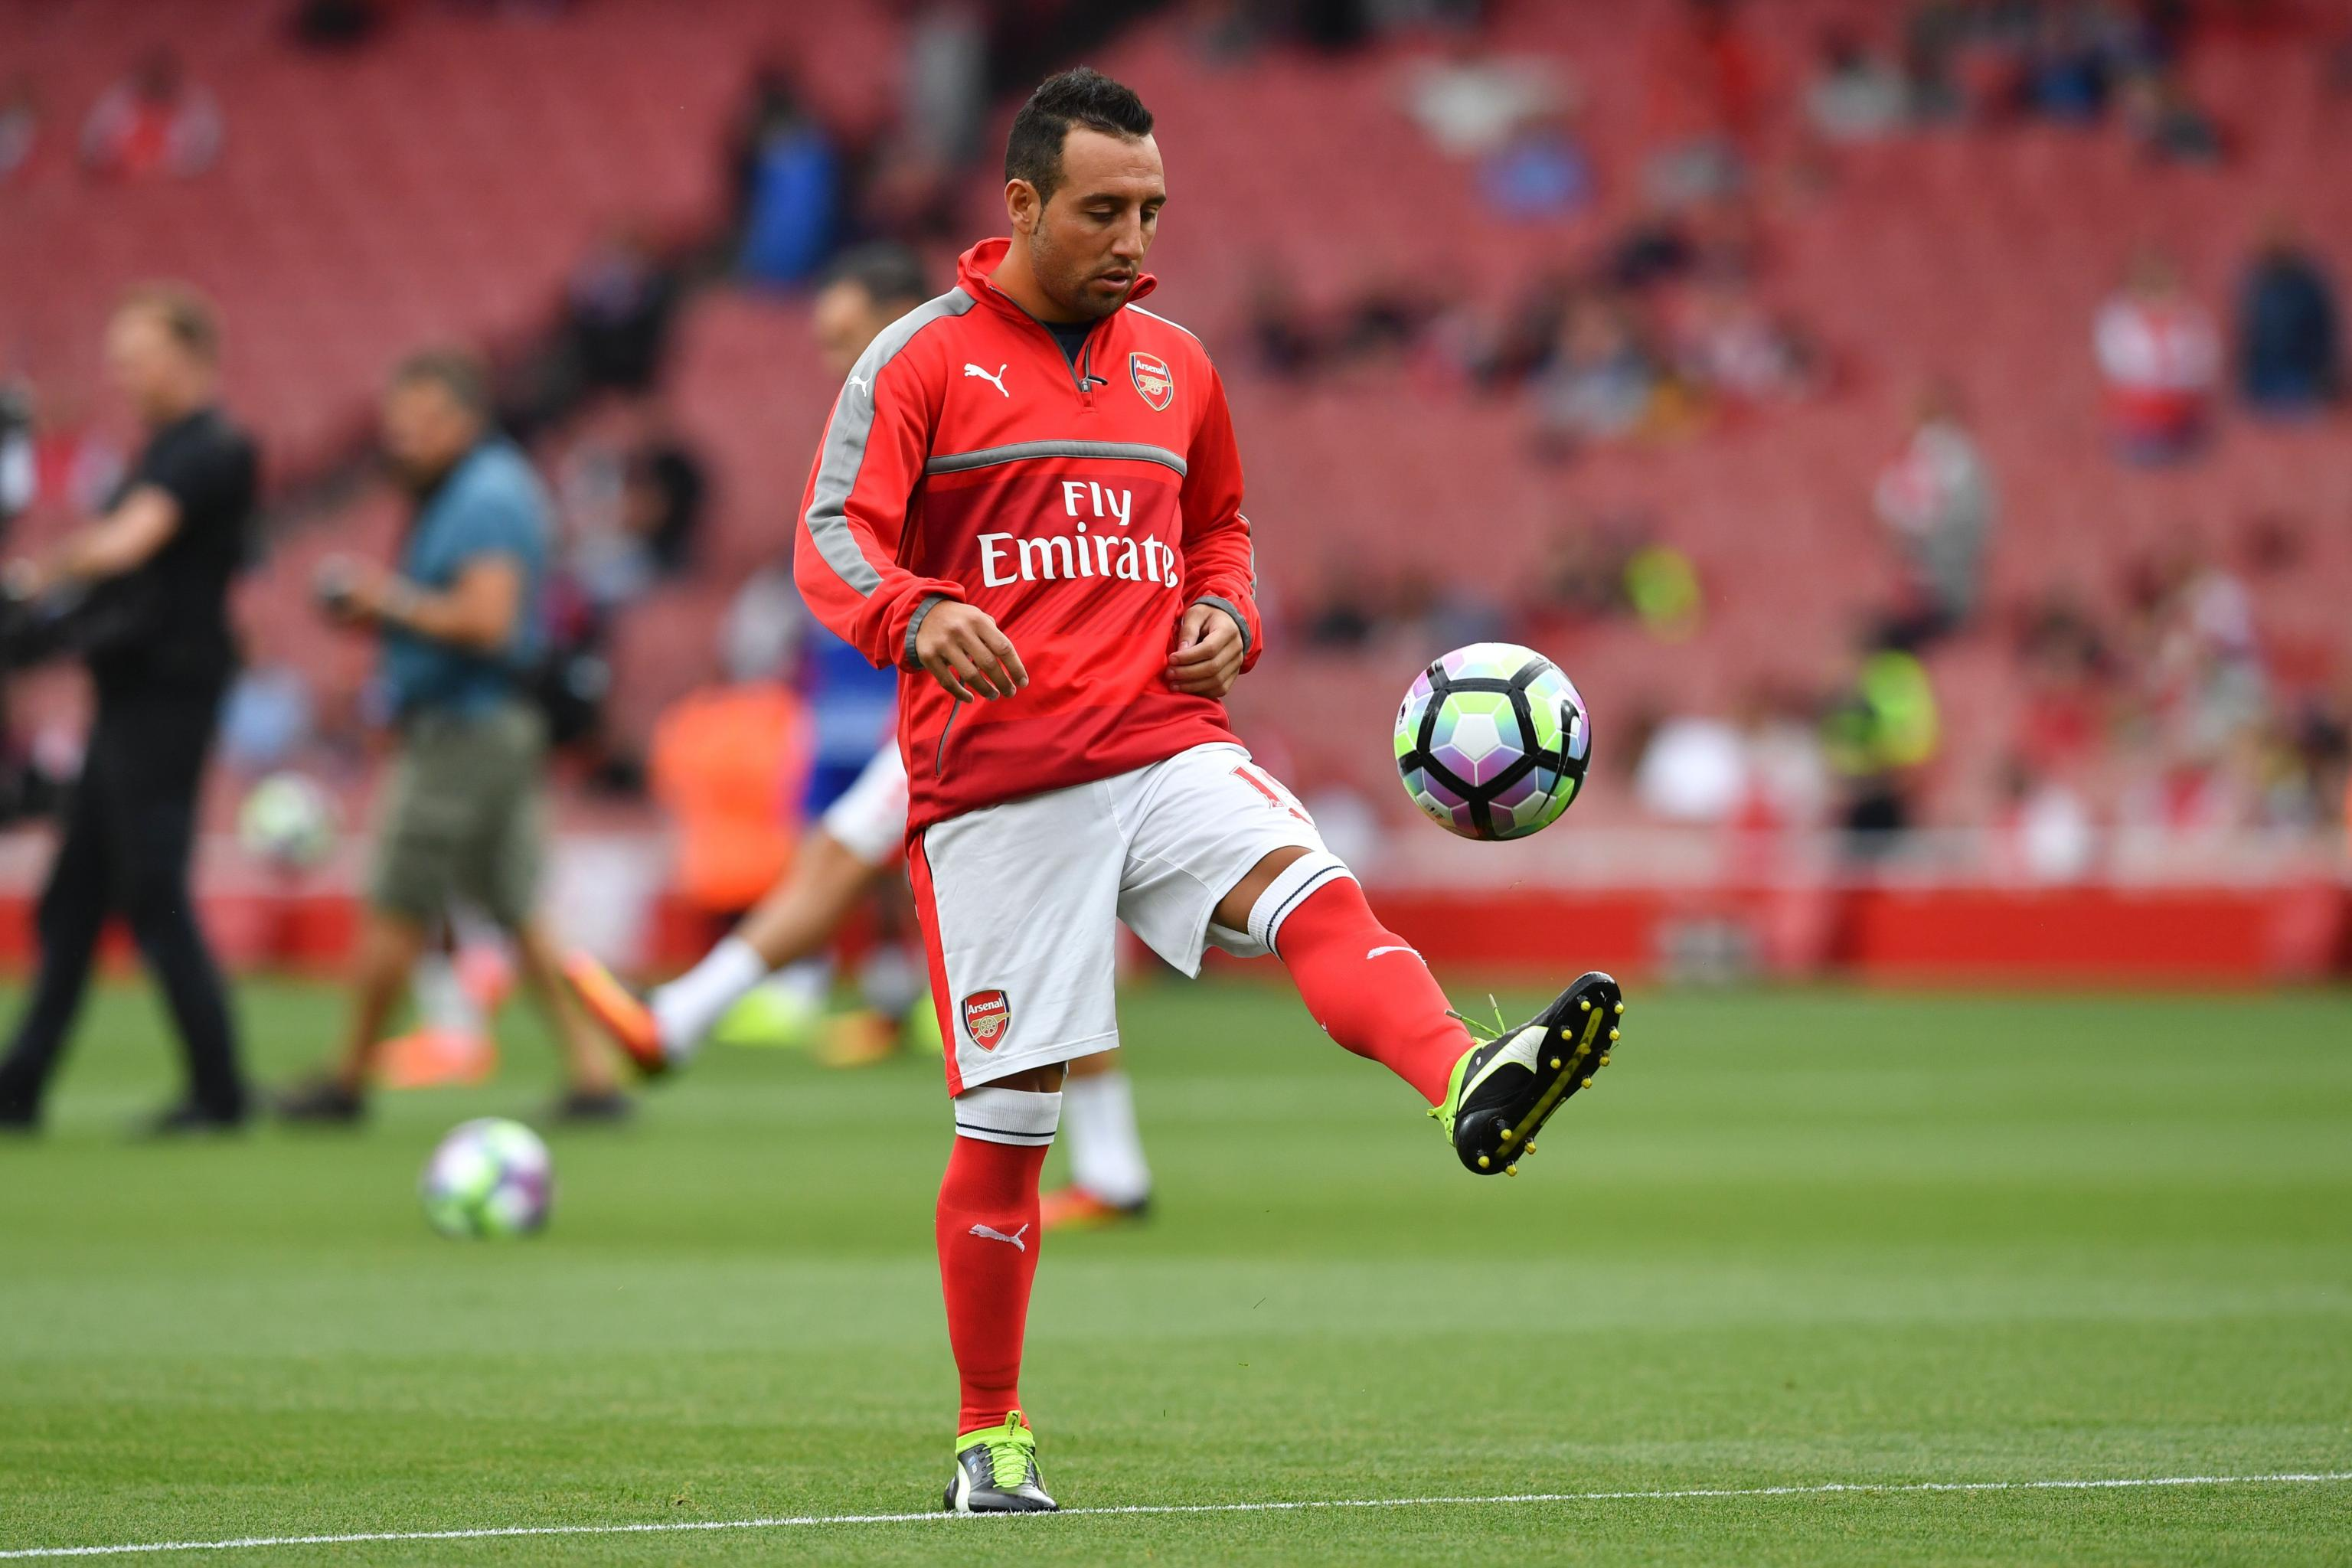 Arsenal Transfer News Santi Cazorla Contract Update Latest On Isco Rumours Bleacher Report Latest News Videos And Highlights